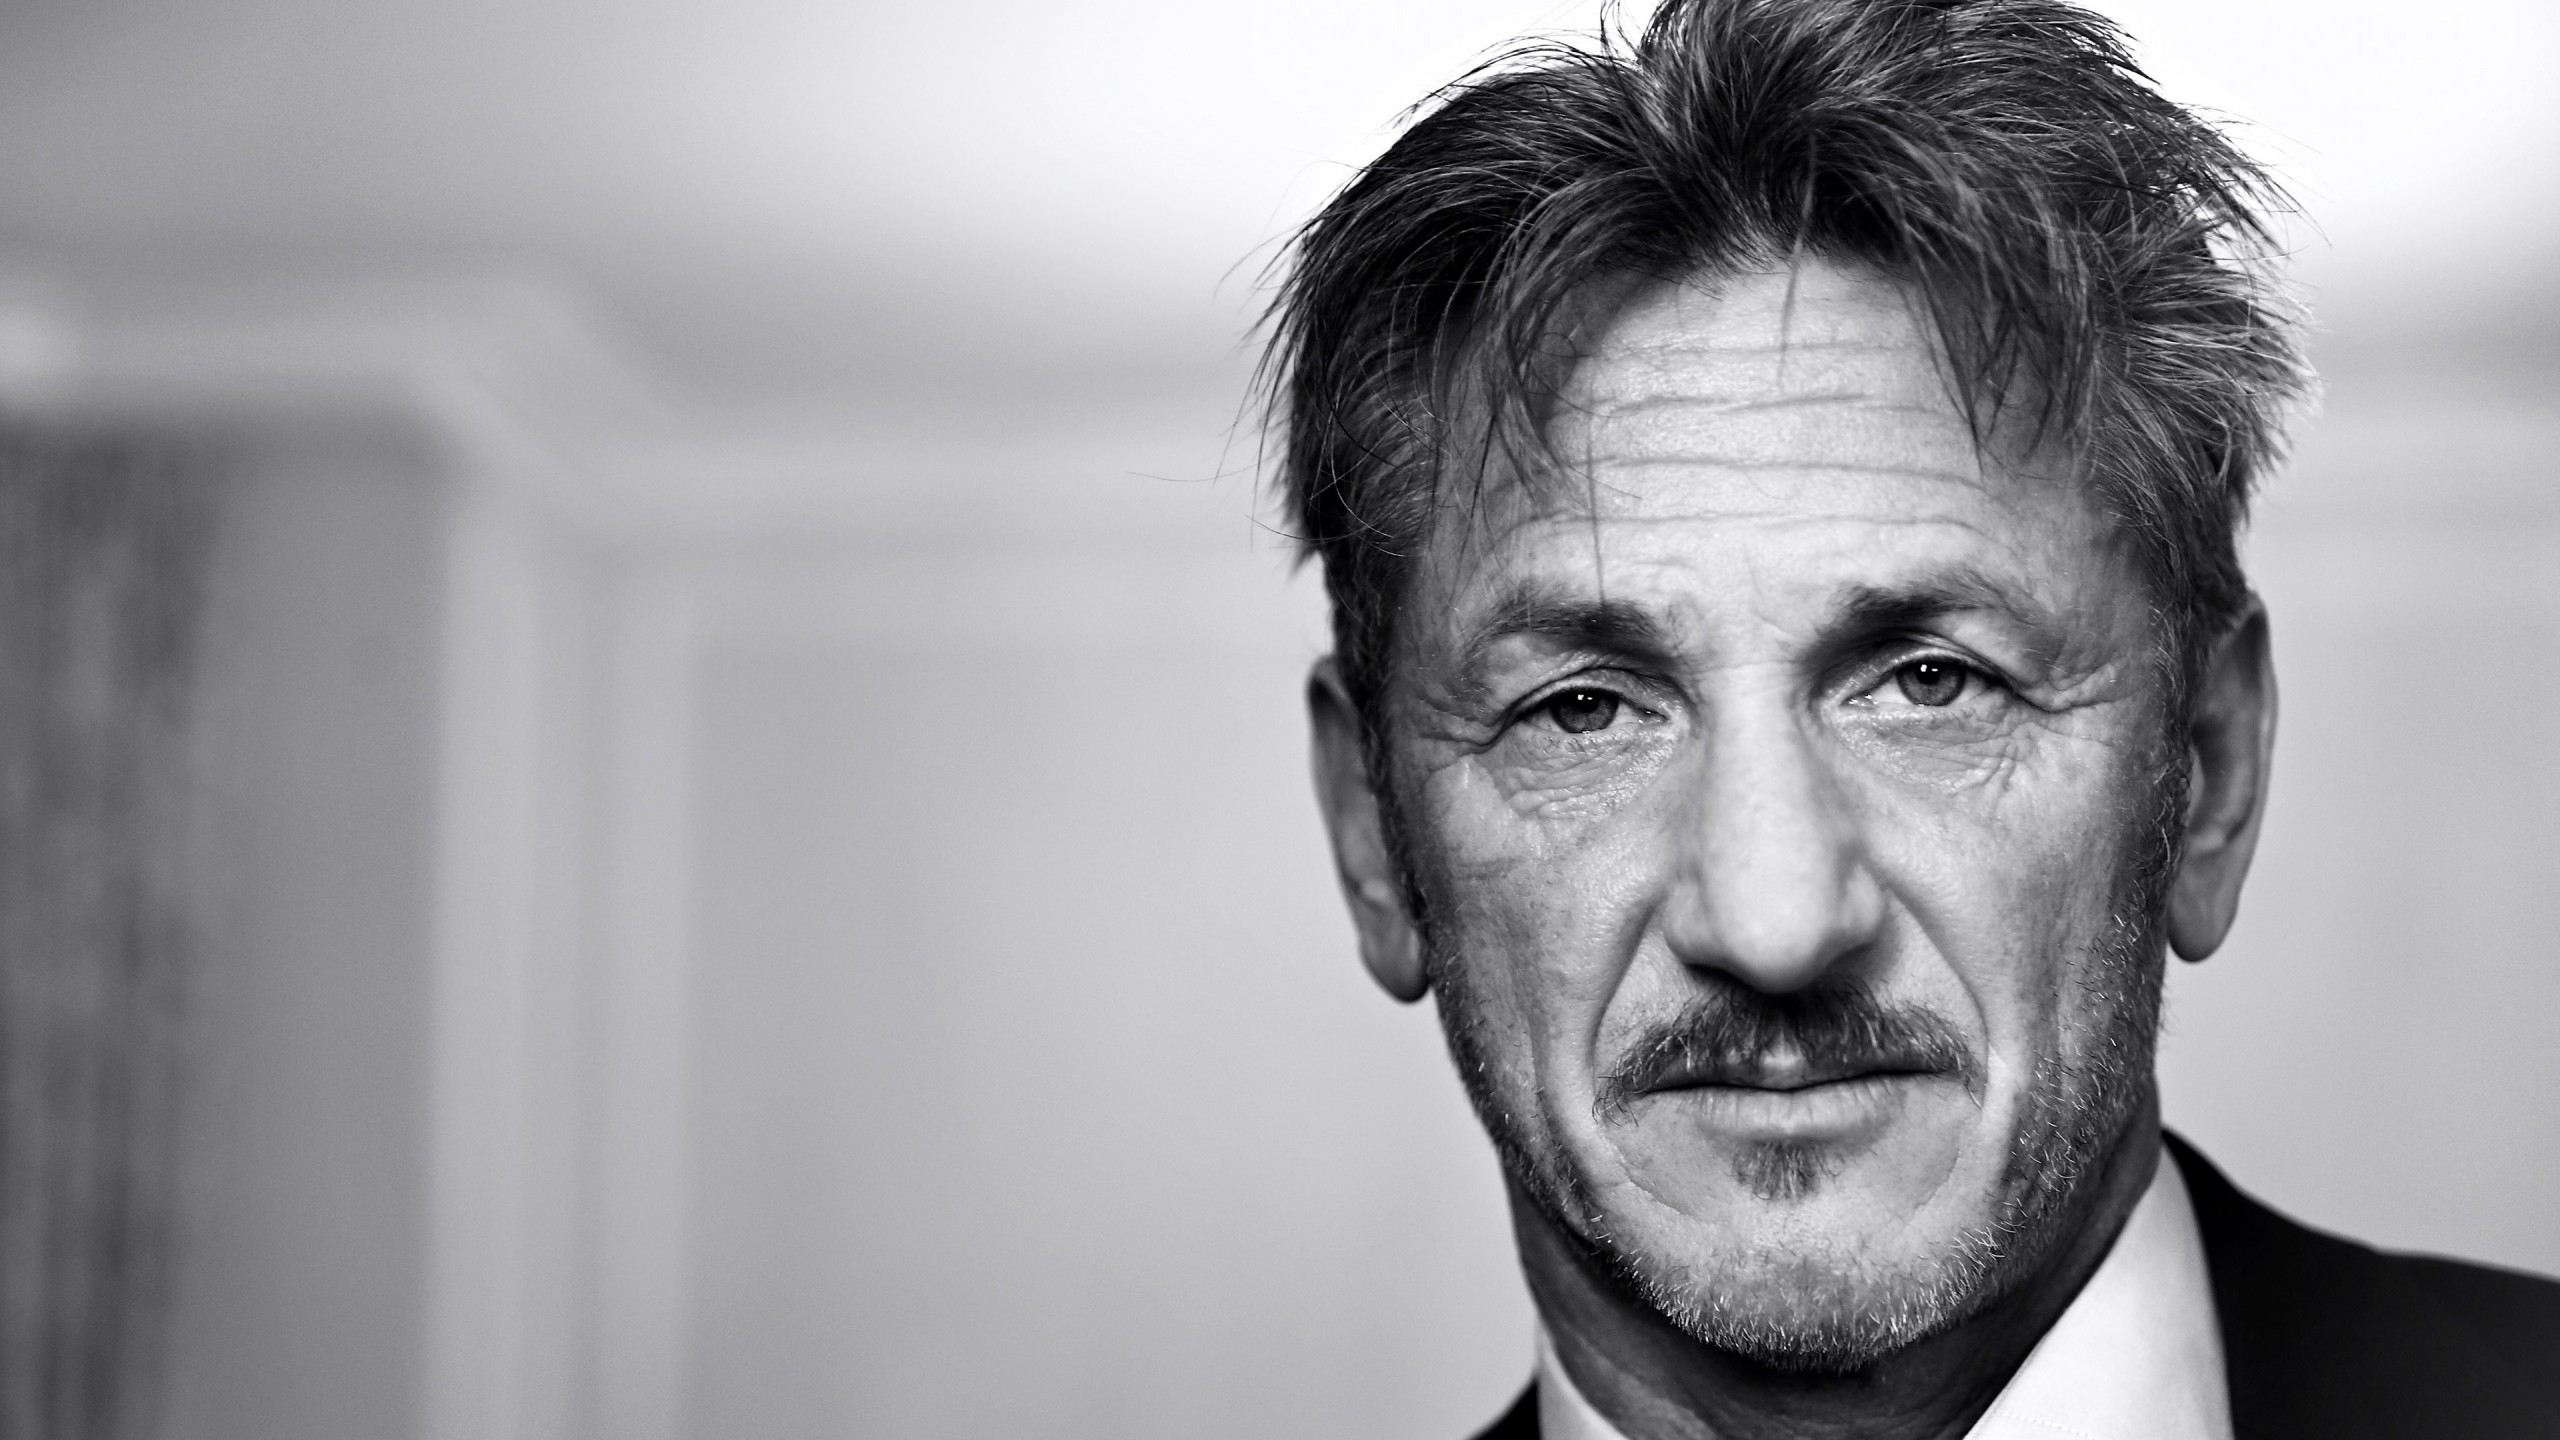 Sean Penn Portrait in Black & White Wallpaper for Desktop 2560x1440